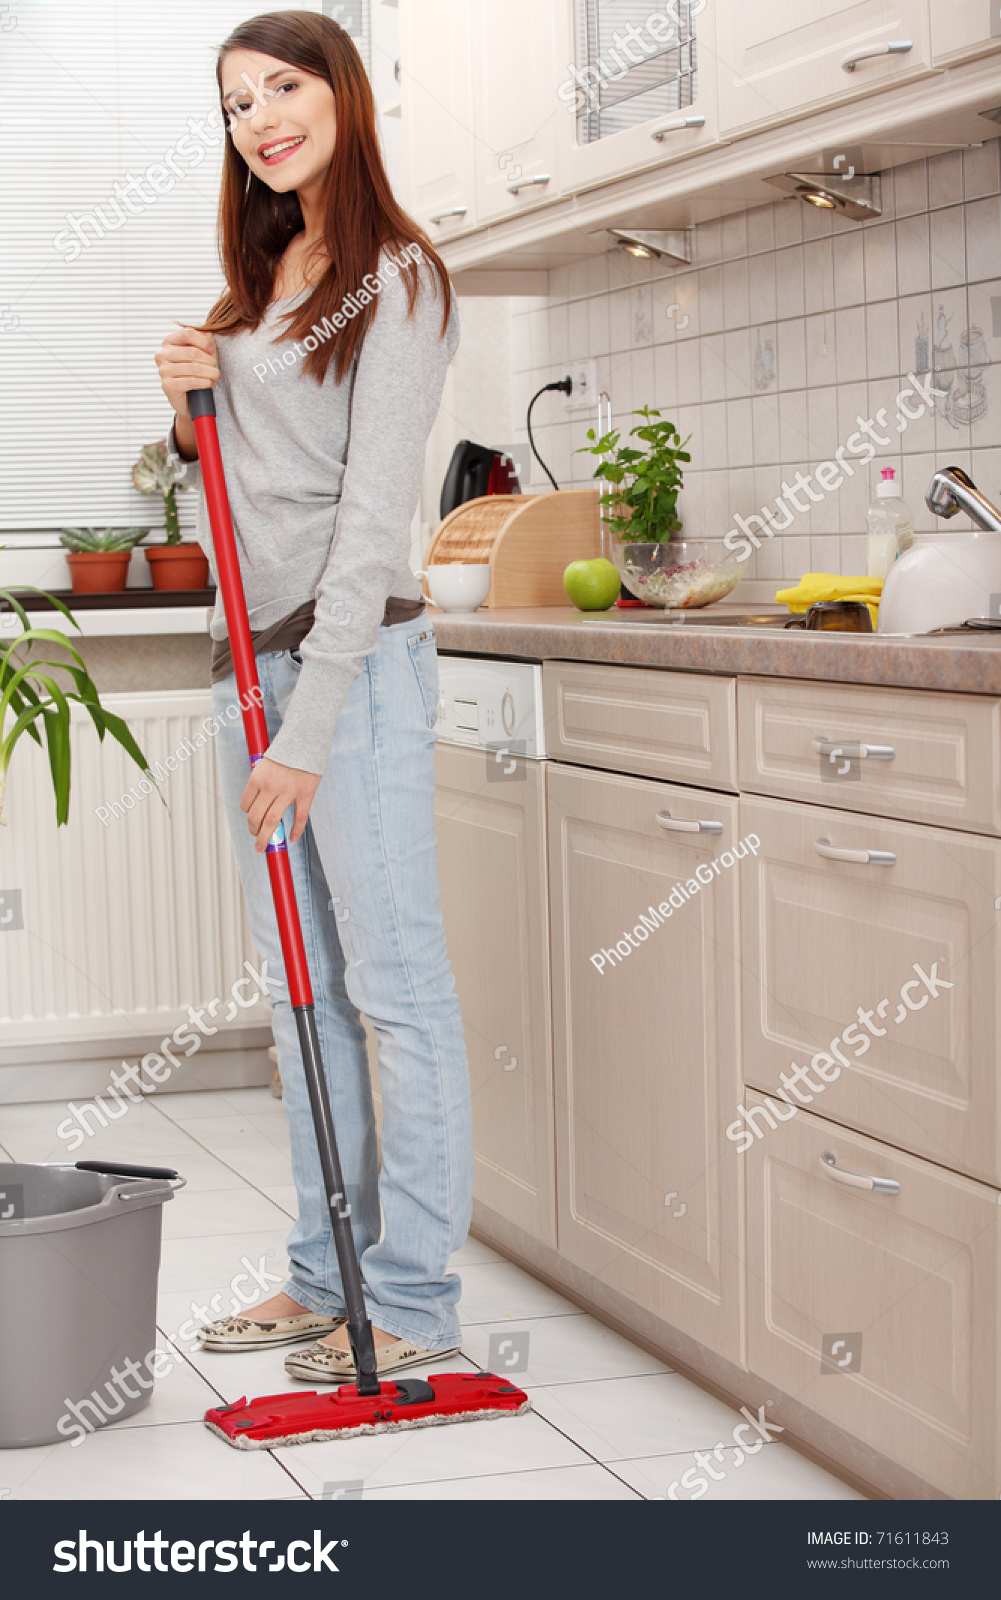 Kitchen Floor Mop Woman Holding A Mop And Cleaning Kitchen Floor Stock Photo